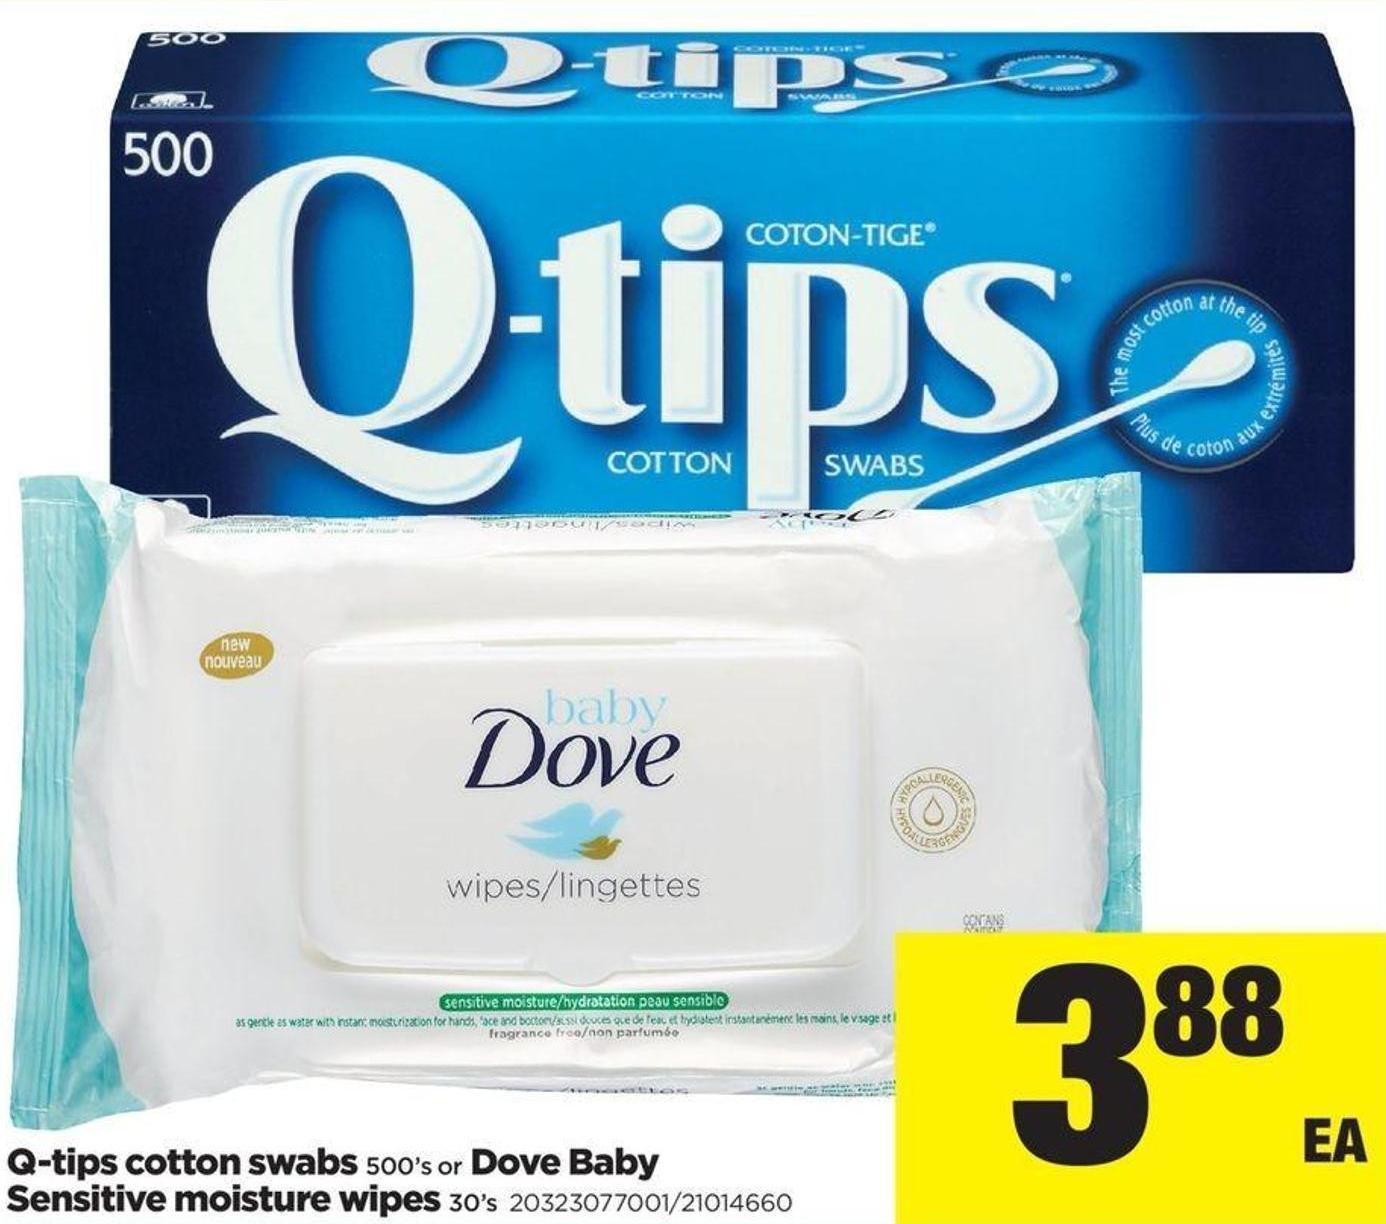 Q-tips Cotton Swabs - 500's Or Dove Baby Sensitive Moisture Wipes - 30's